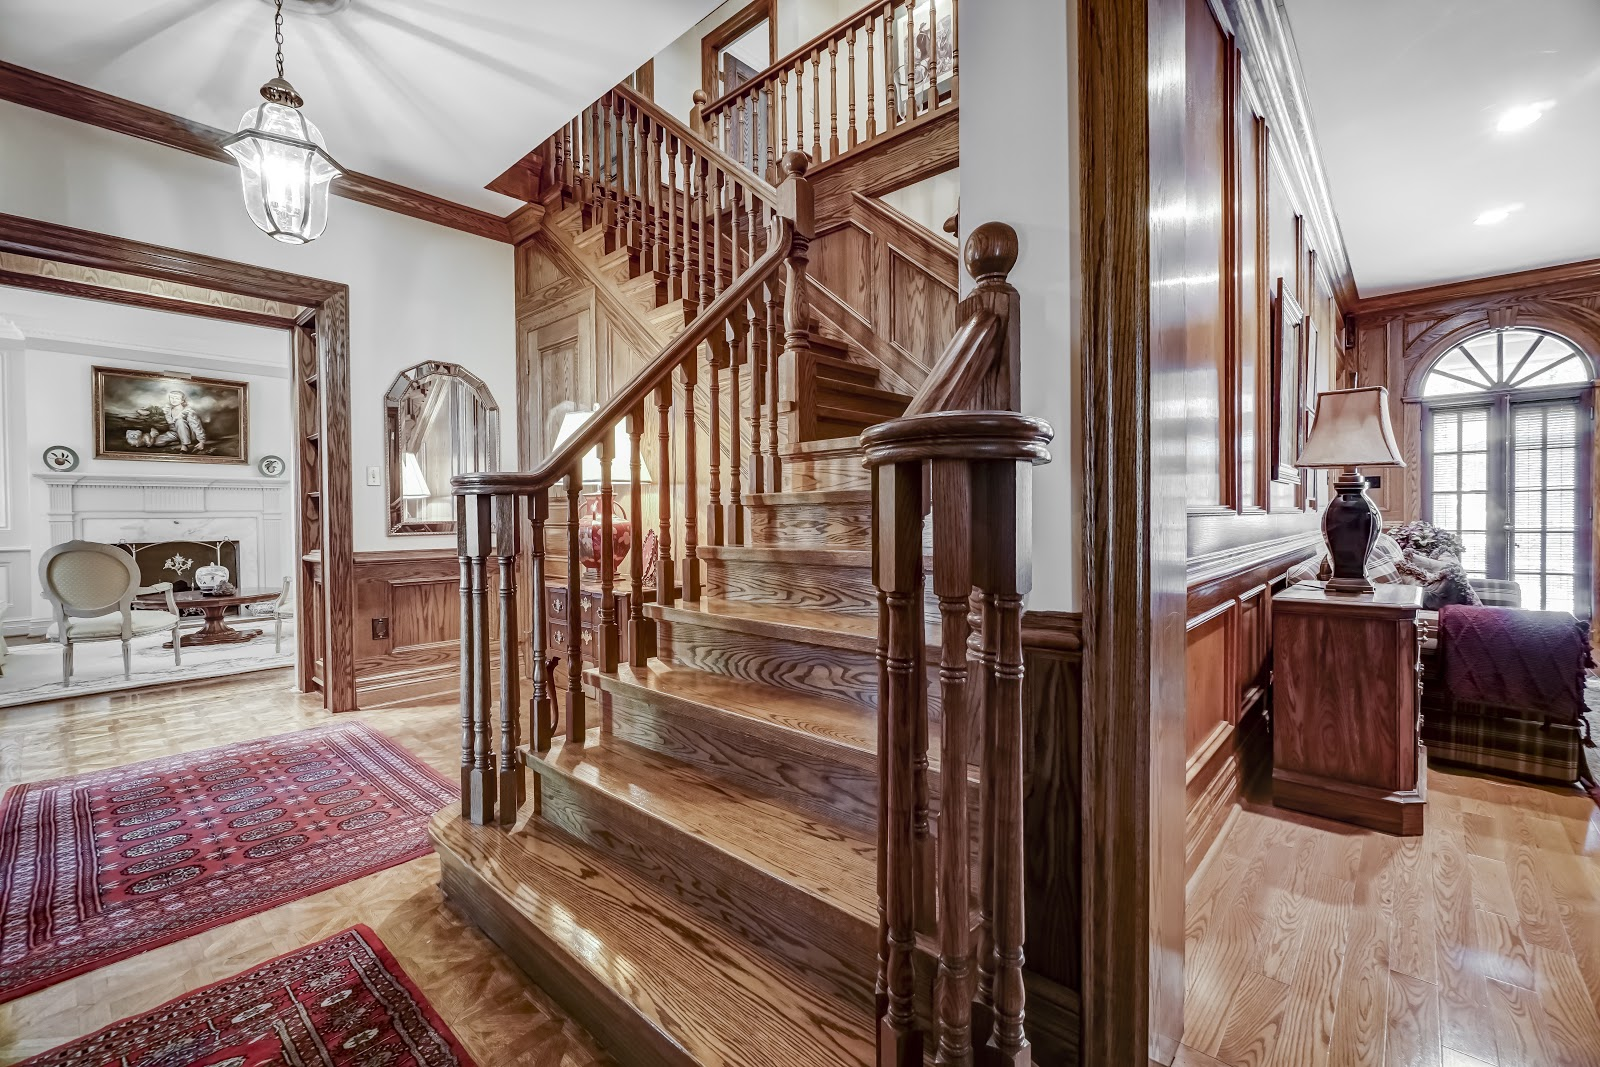 House Of The Week 3 4 Mil Downton Abbey Style Home With